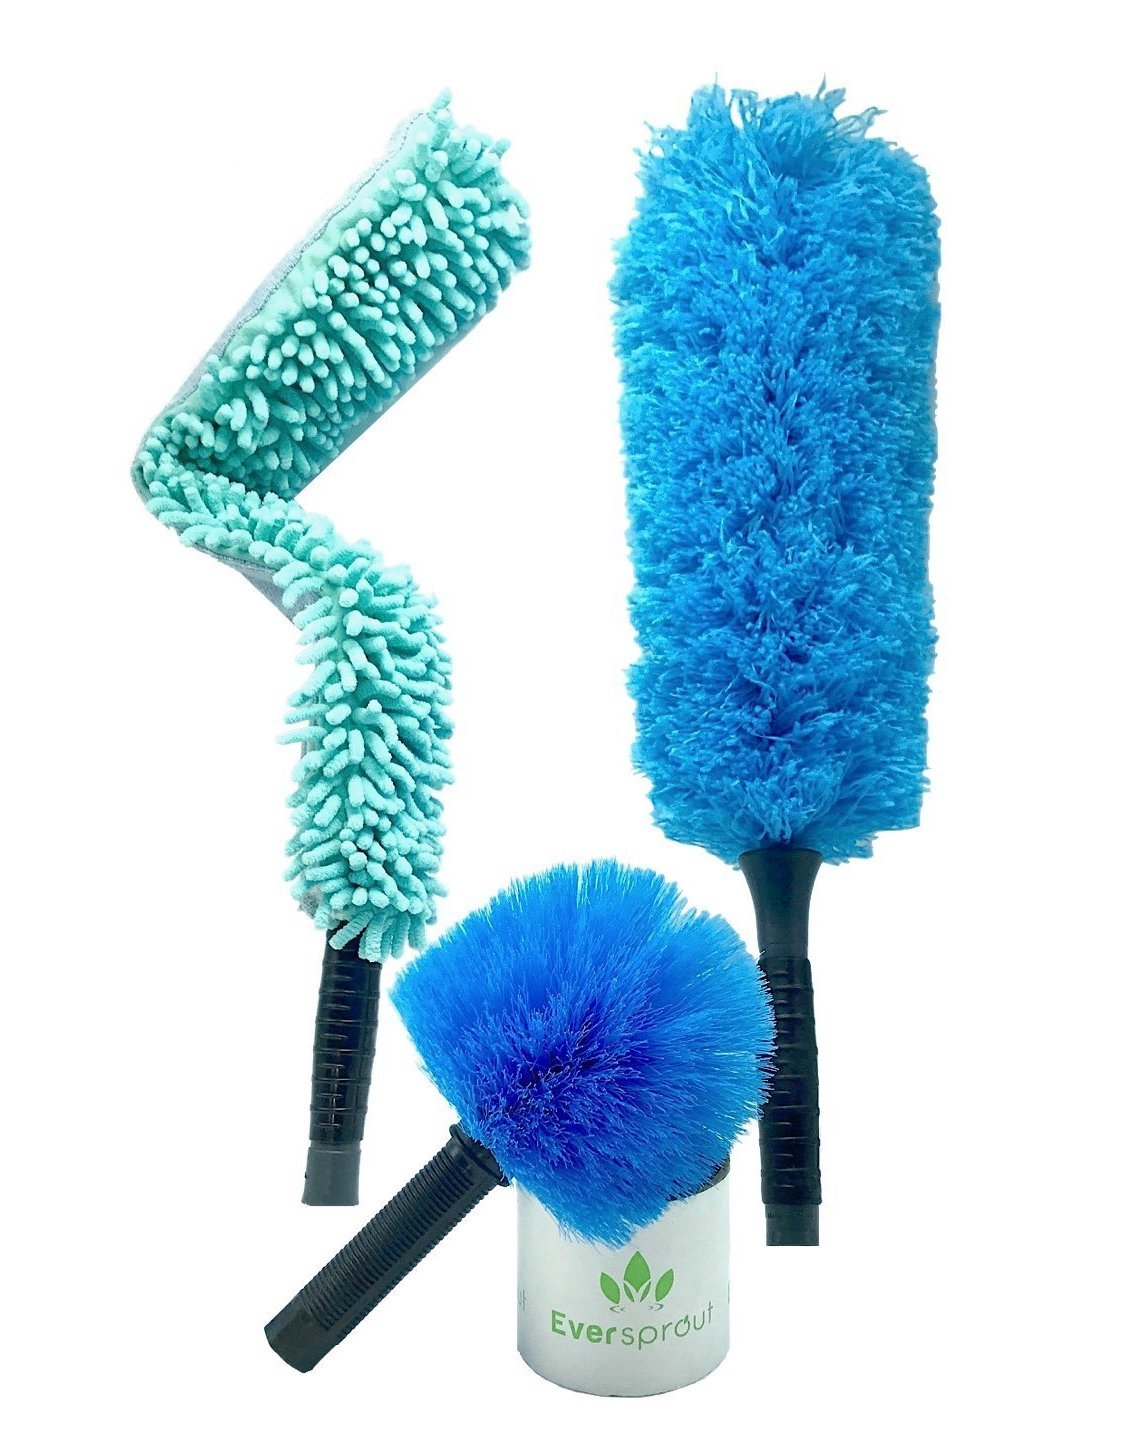 EVERSPROUT Duster 3-Pack | Hand-Packaged Cobweb Duster, Microfiber Feather Duster, Flexible Microfiber Ceiling & Fan Duster | Twists onto Standard 3/4'' Acme Threaded Poles (Pole not Included)